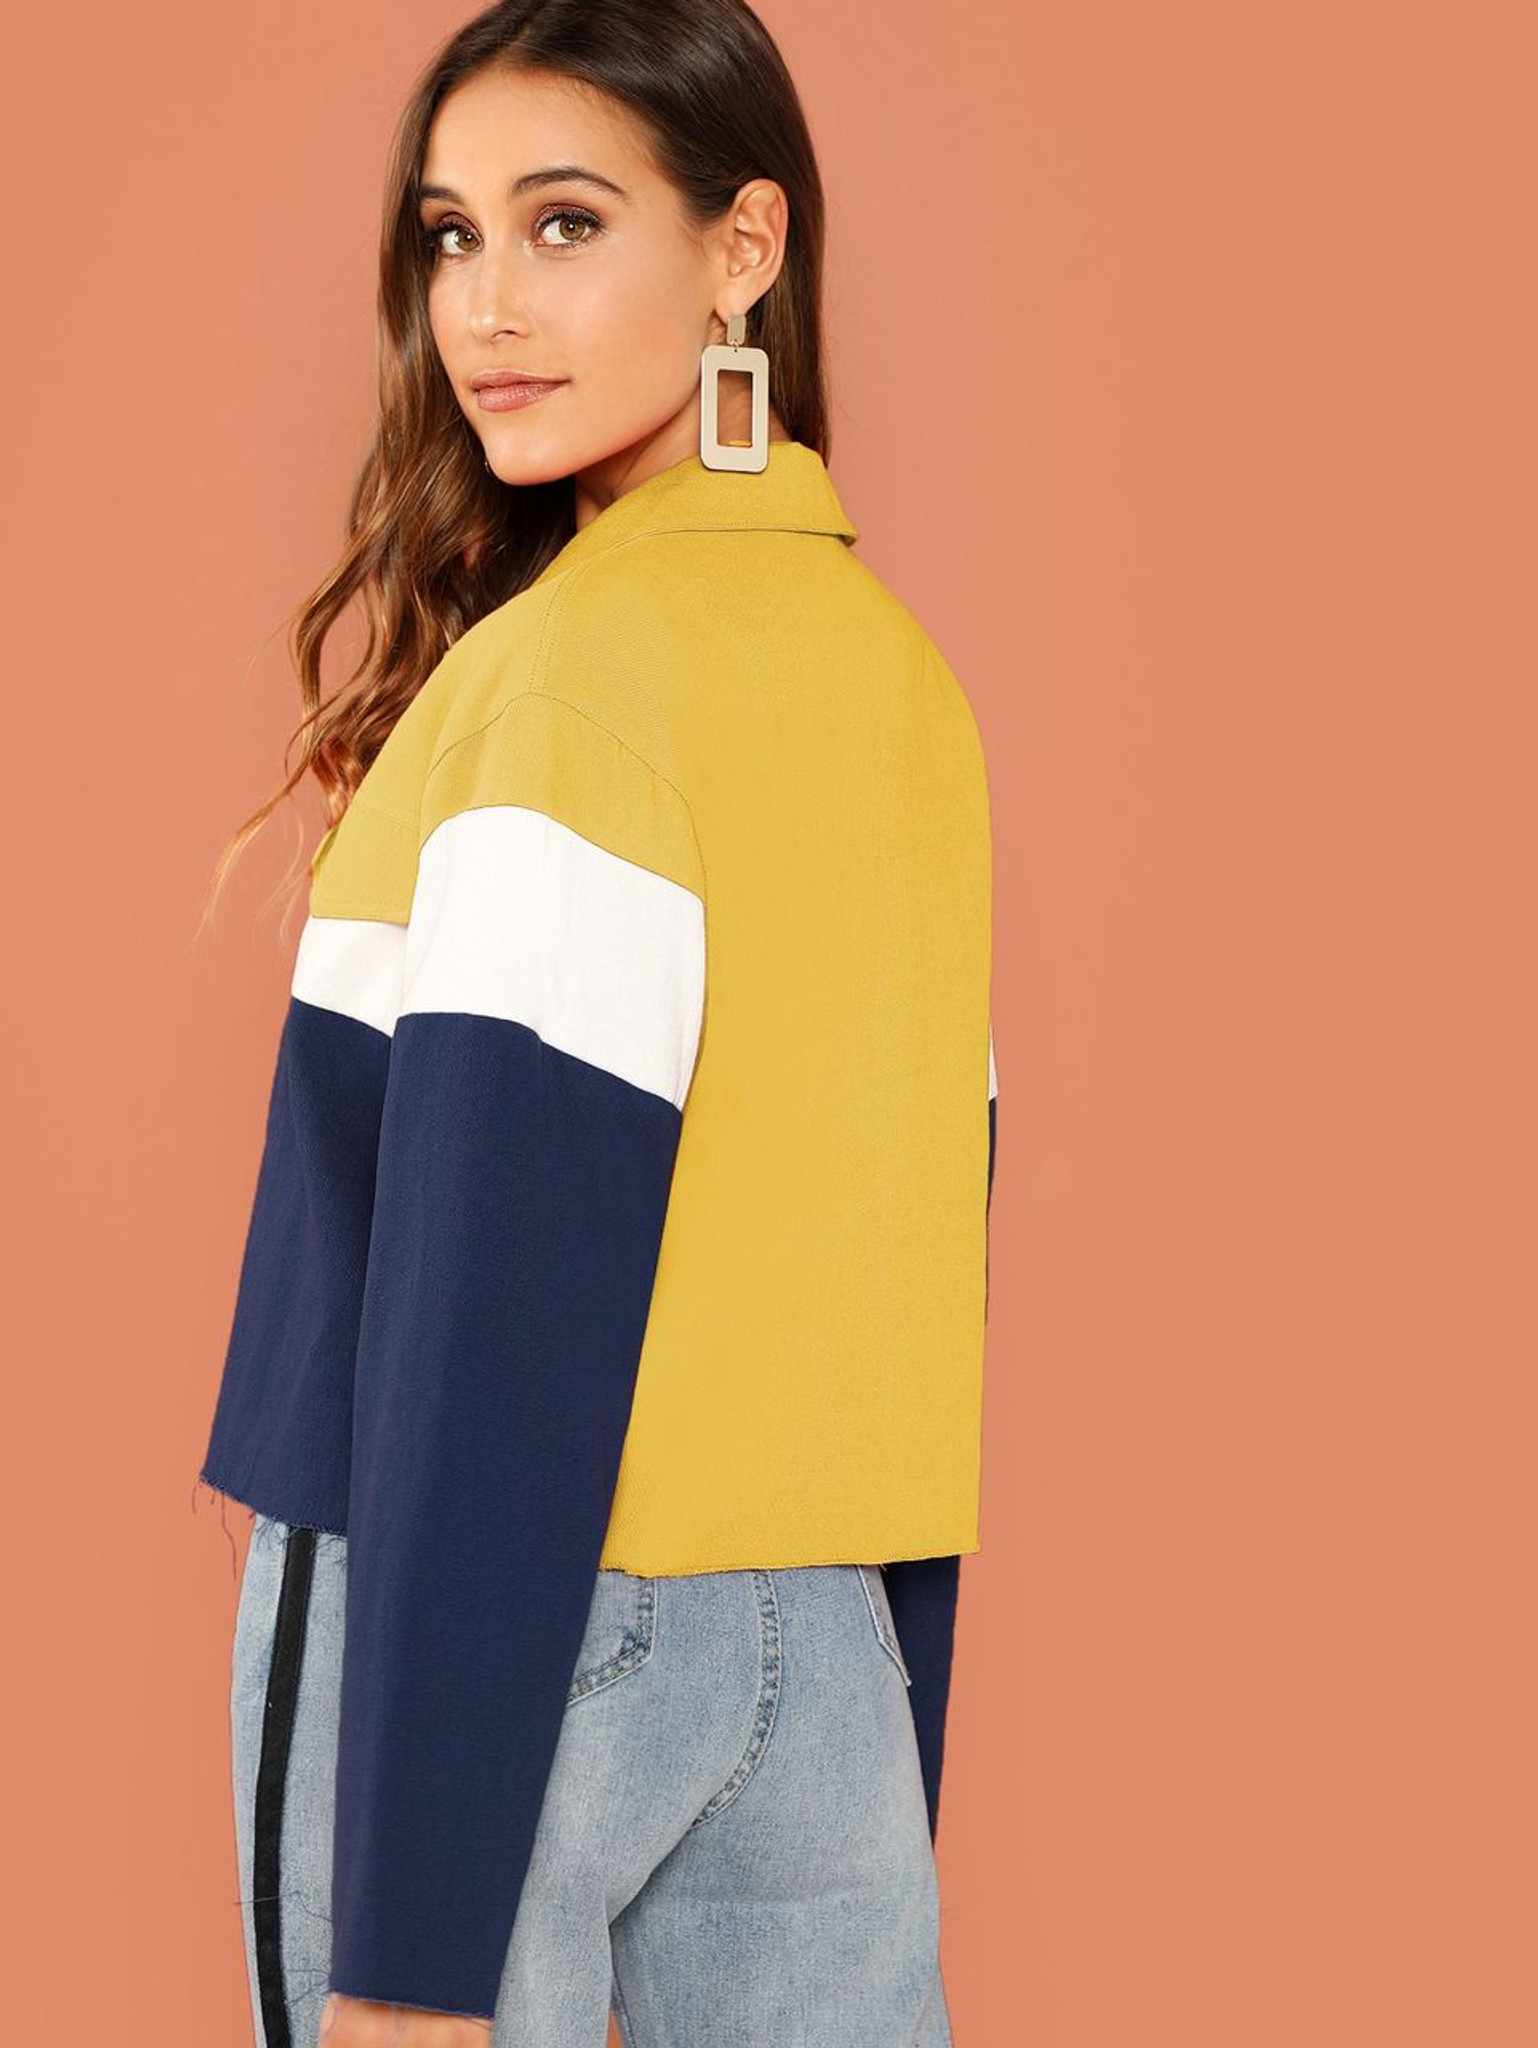 Fifth Avenue Cropped Fleece Color Block Button Jacket LNA1020 - Blue and Yellow